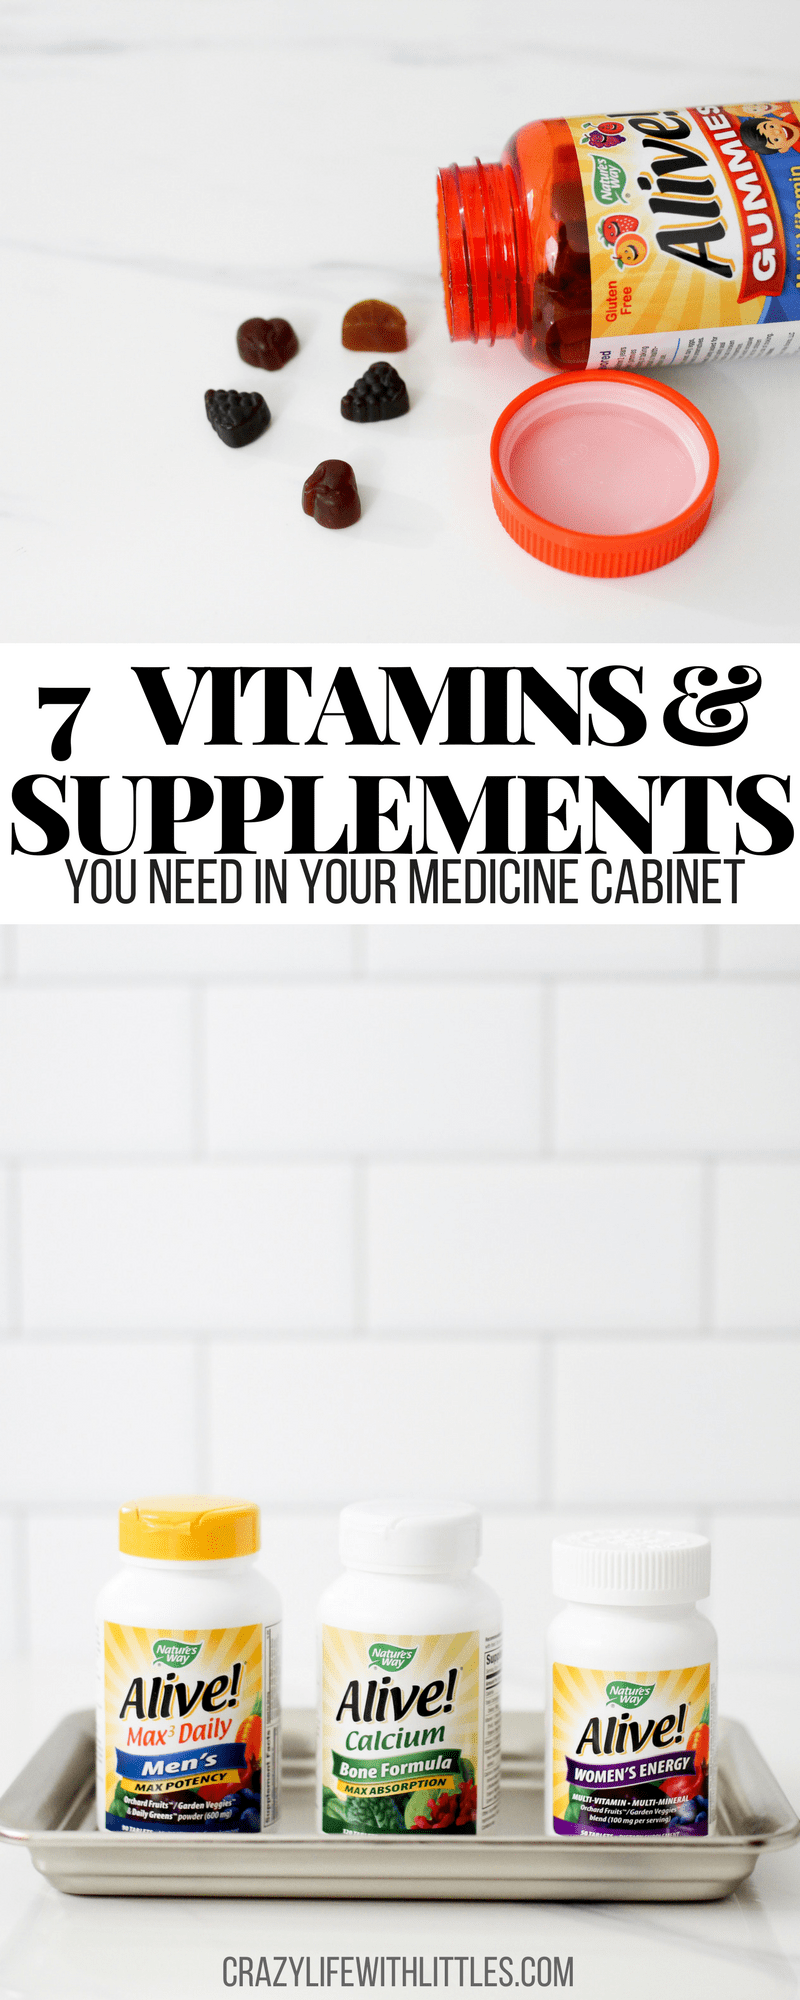 7 vitamins and supplements you need in your medicine cabinet, healthy family habits and practices, healthy family tips, family habits list, how to keep your family healthy, happy family habits, family habits examples, characteristics of a healthy family, healthy family lifestyle, iHerb, Nature's Way vitamins and supplements for the whole family